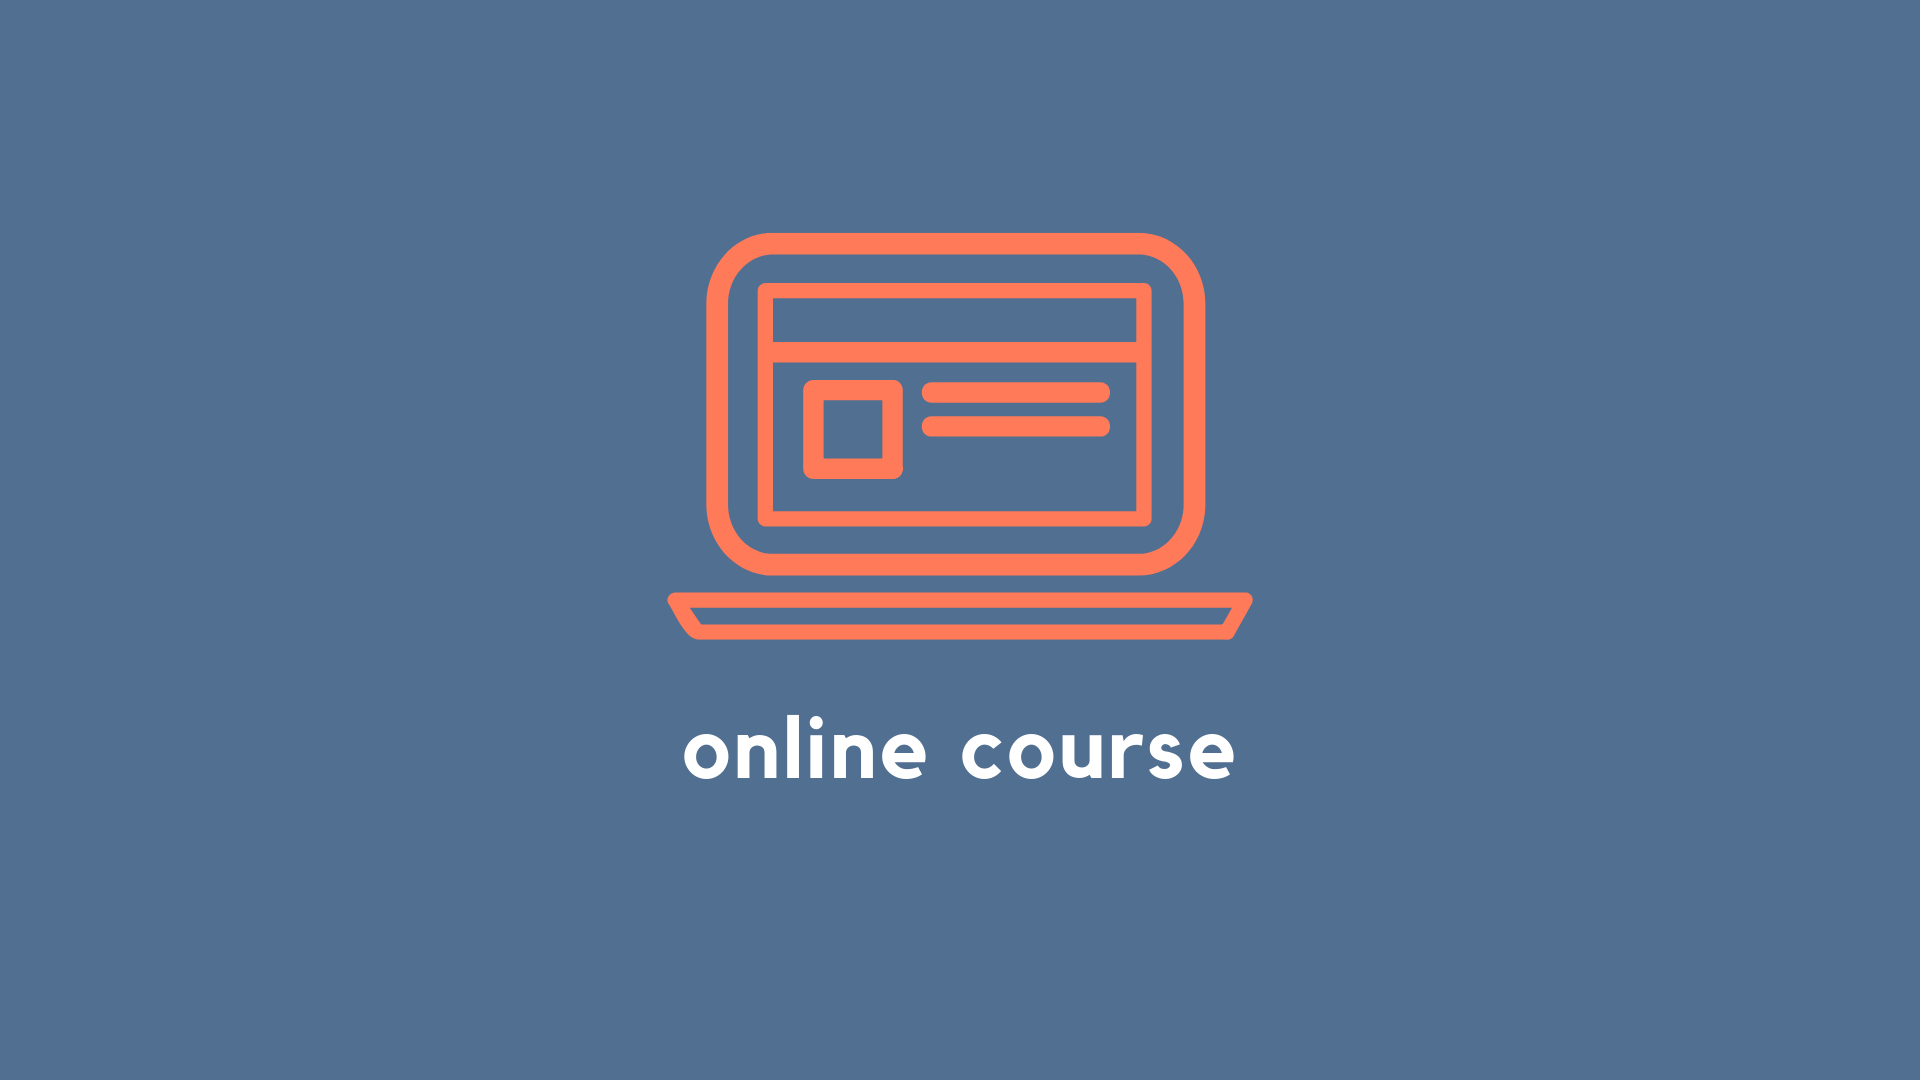 Startup Online Course